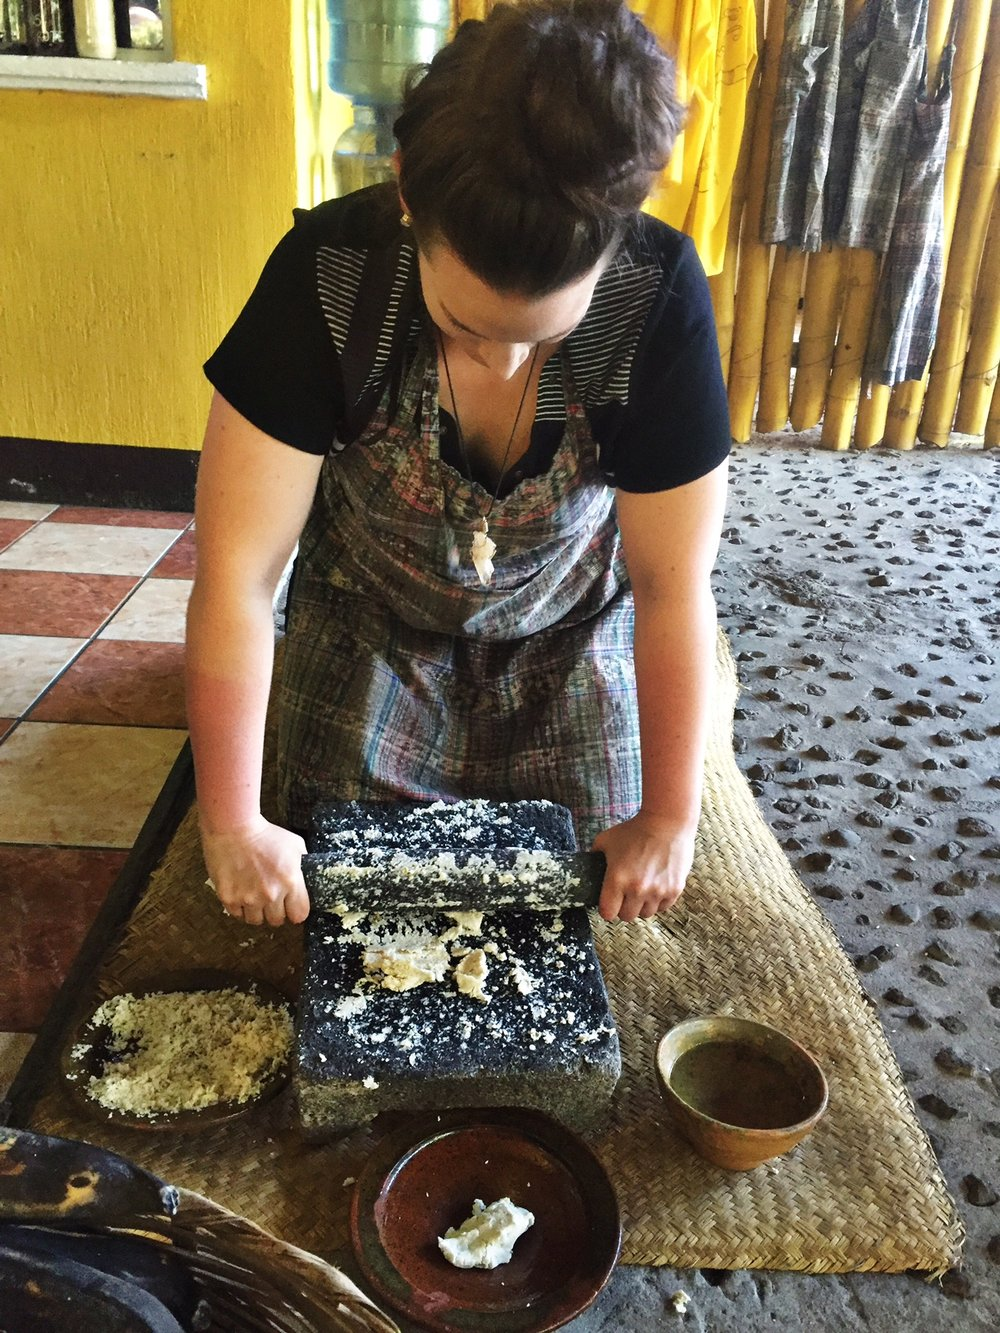 Grinding the corn for tortillas